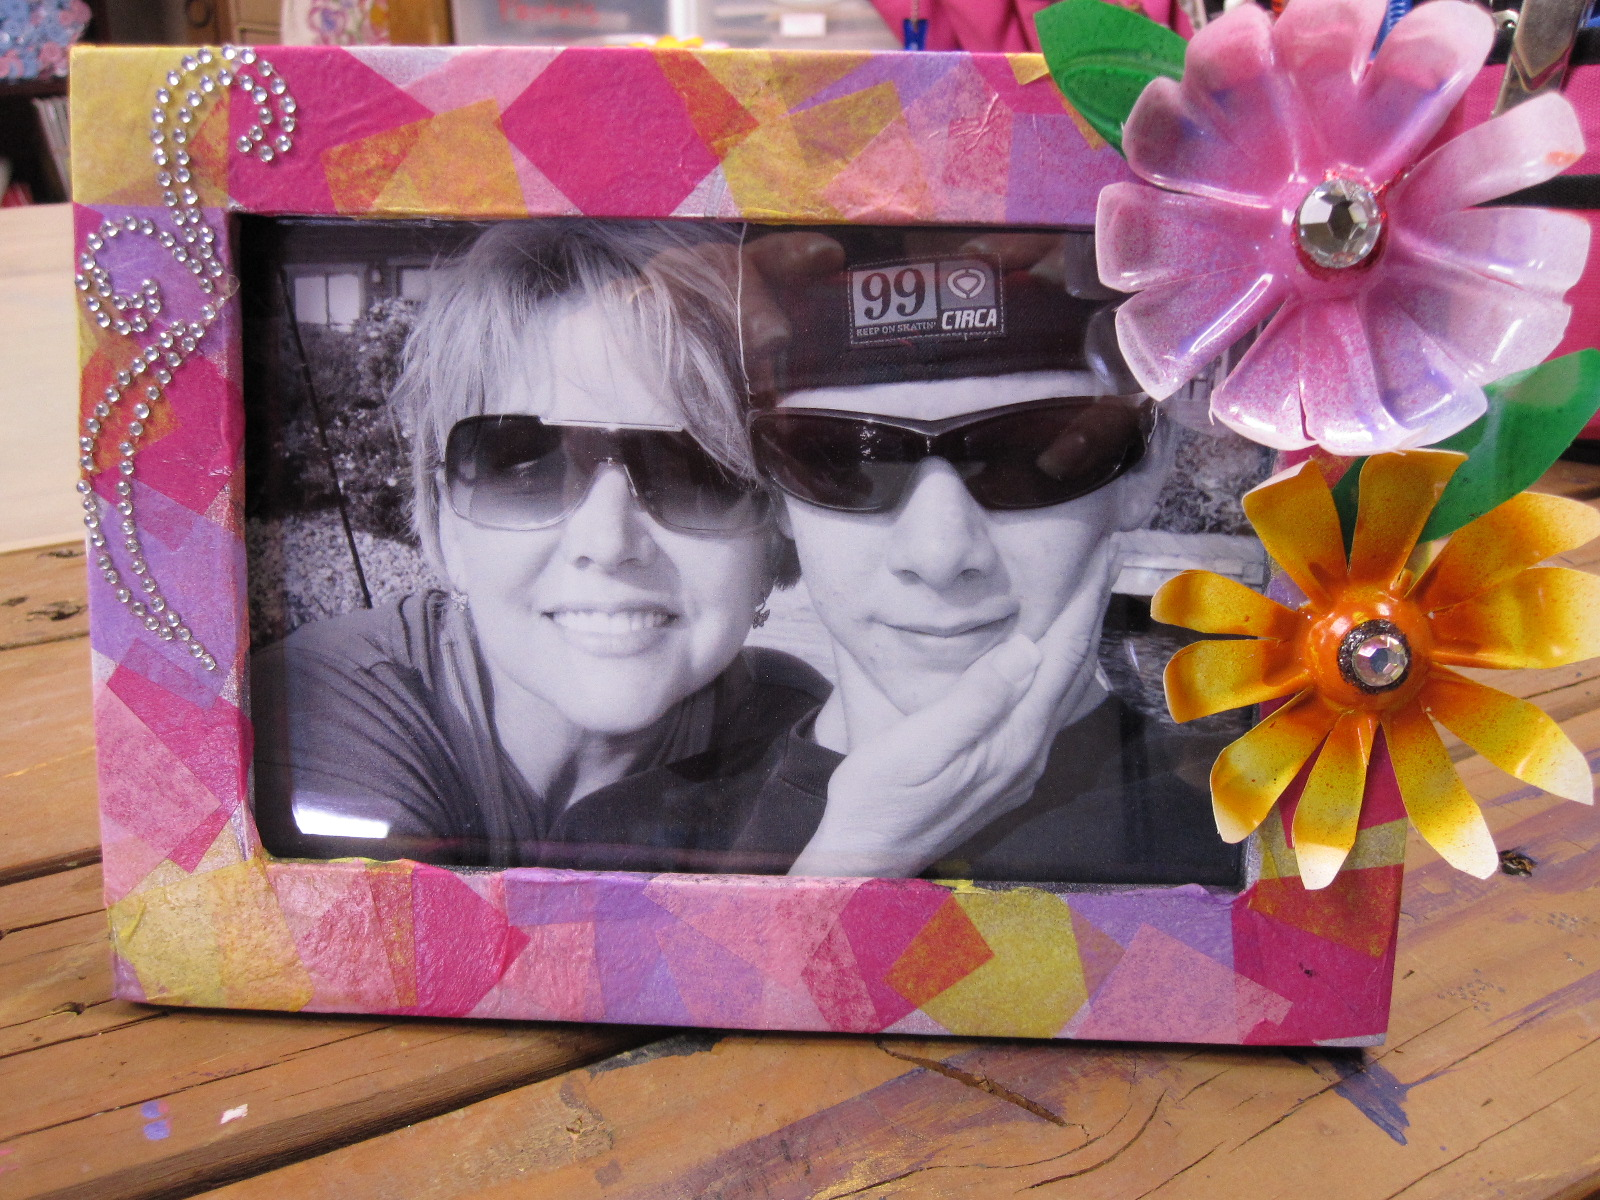 Amazoncouk godparent photo frame